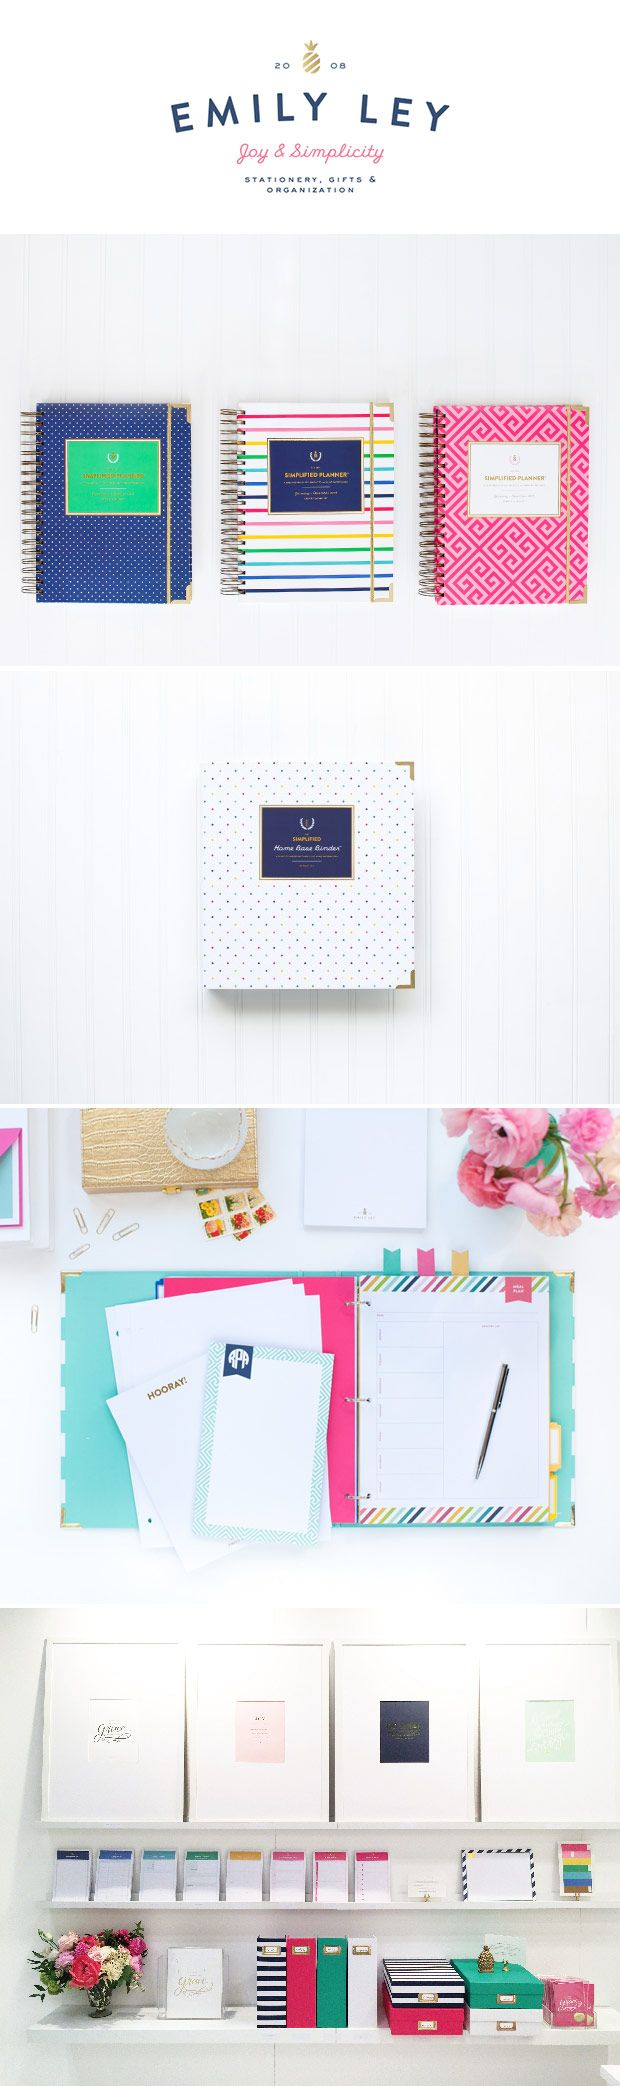 Emily Ley stationery, gifts  organization.